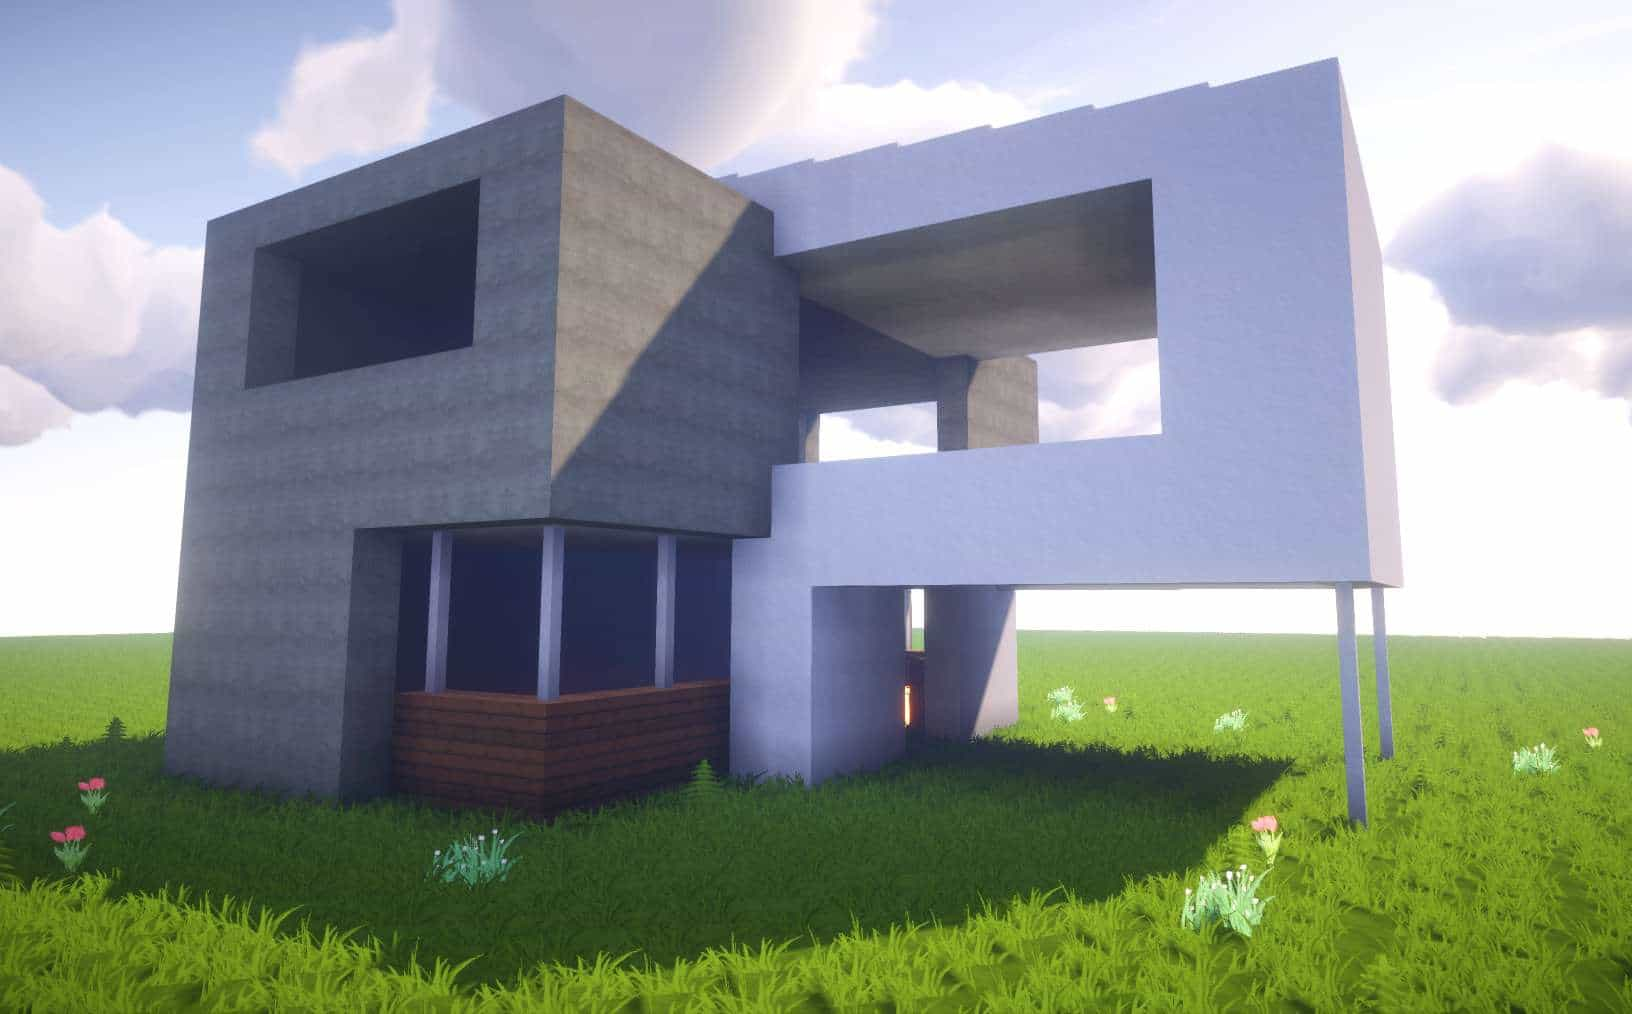 Minecraft: How To Build A Simple Modern House